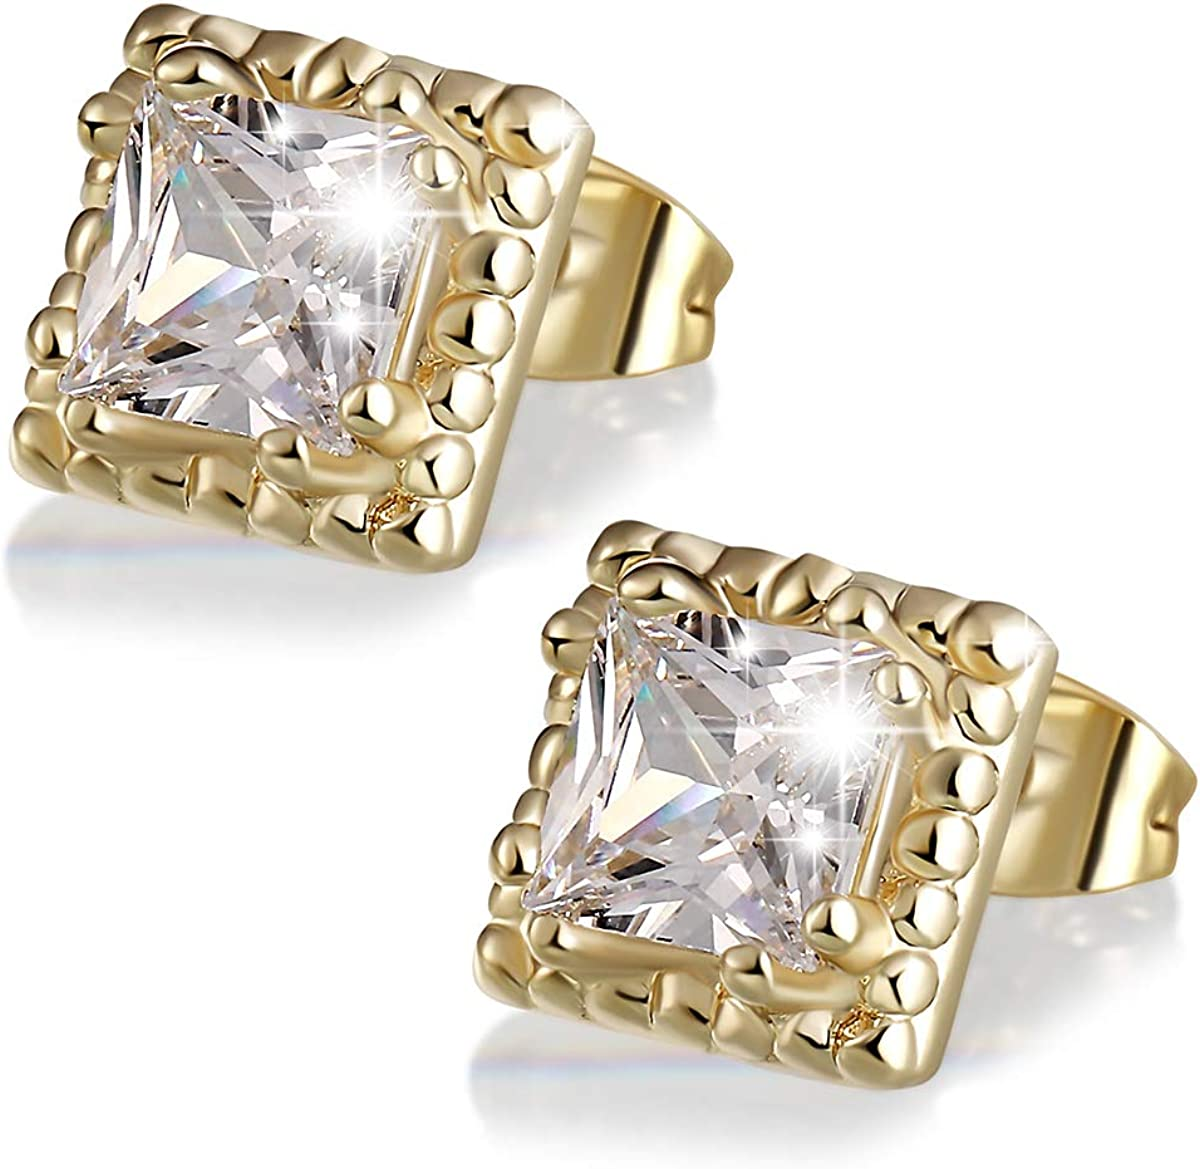 MAIDEARS Square CZ Stud Earrings for 1 Rare Women Three layer and Max 69% OFF Men